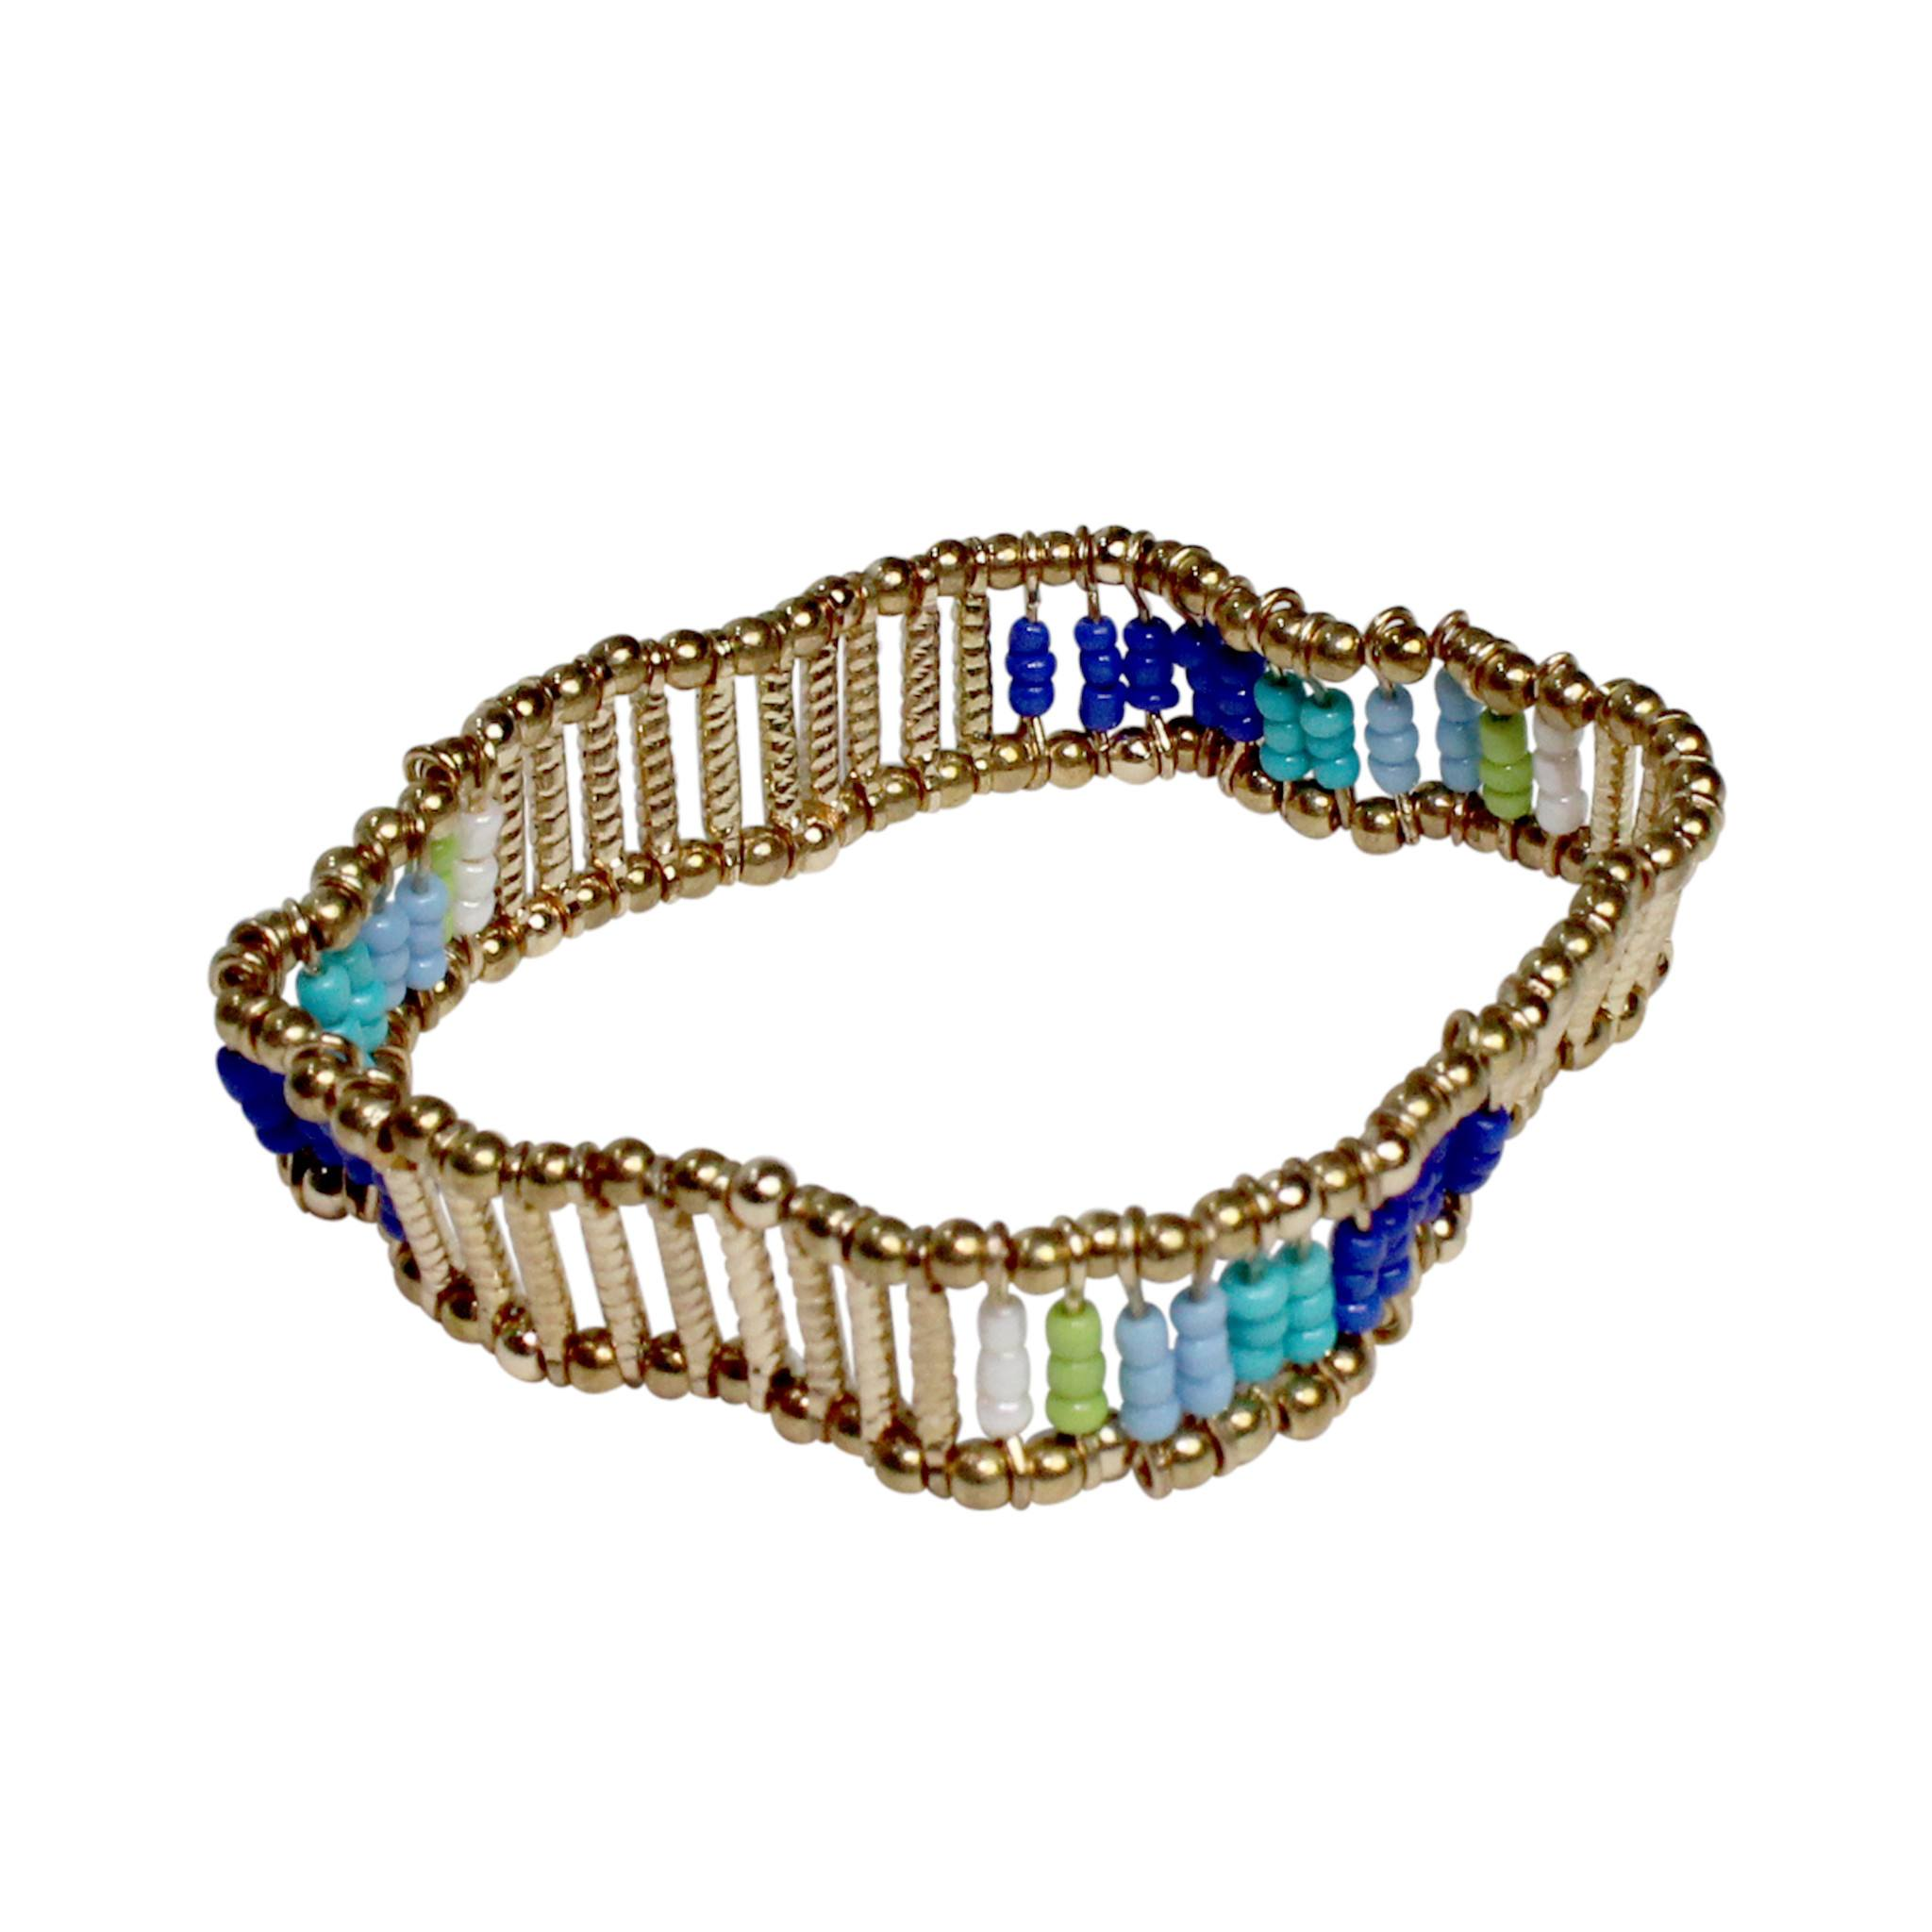 Private Label Beaded Stretch Bracelet   Muse Boutique Outlet